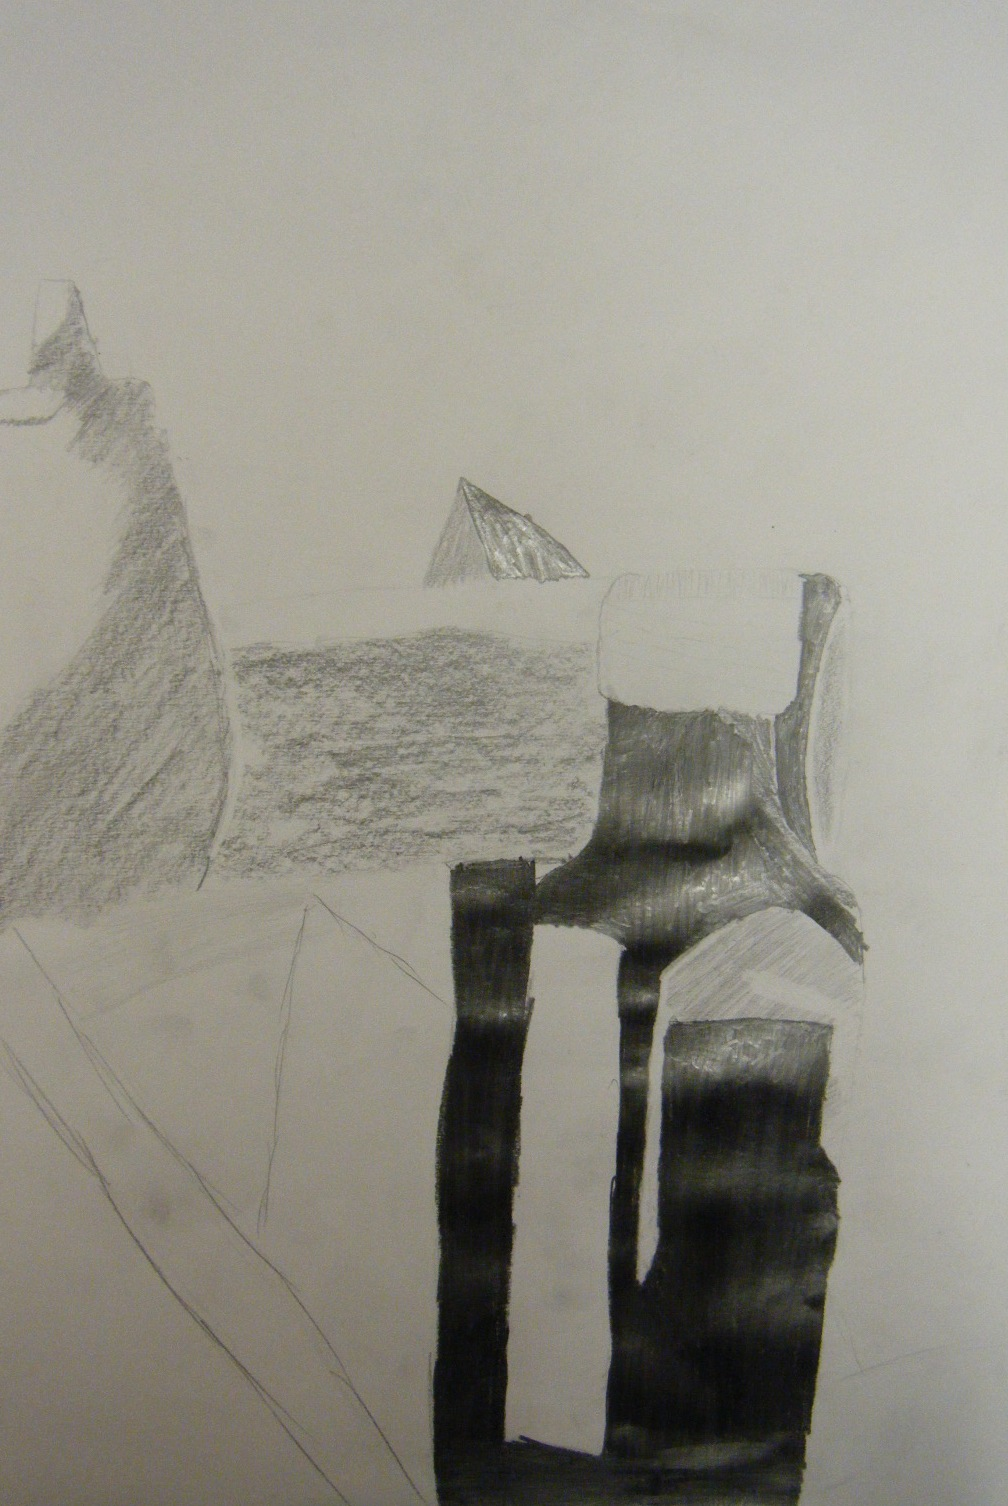 Drawn still life basic With contour Still to began